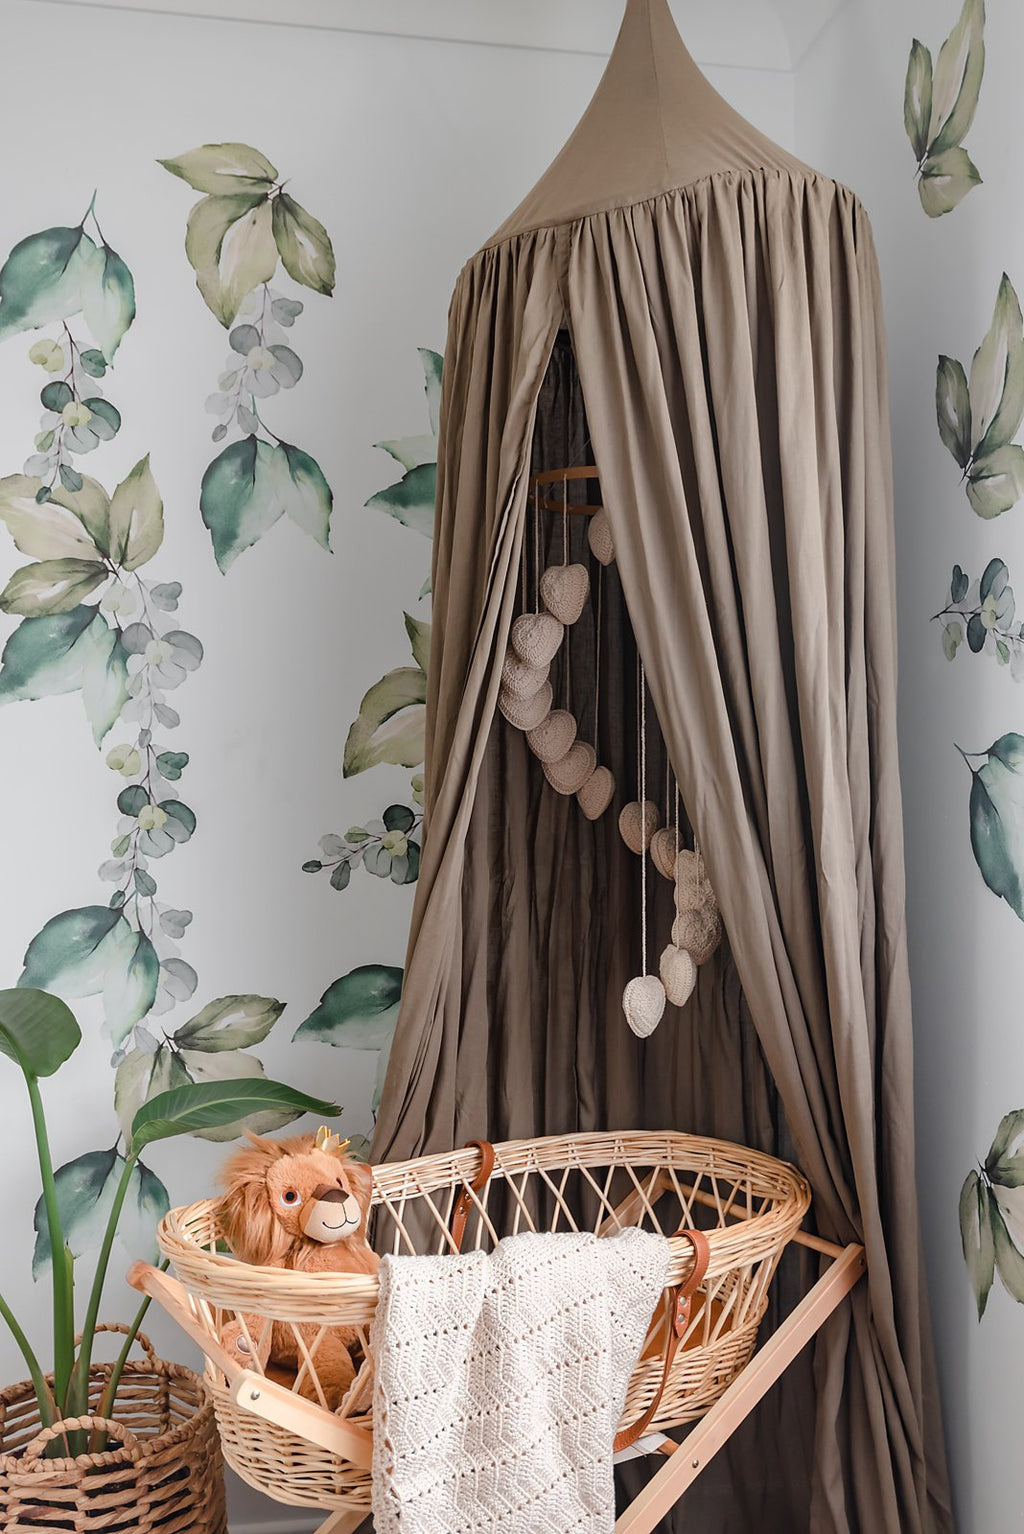 OB Designs Boho Canopy Safari